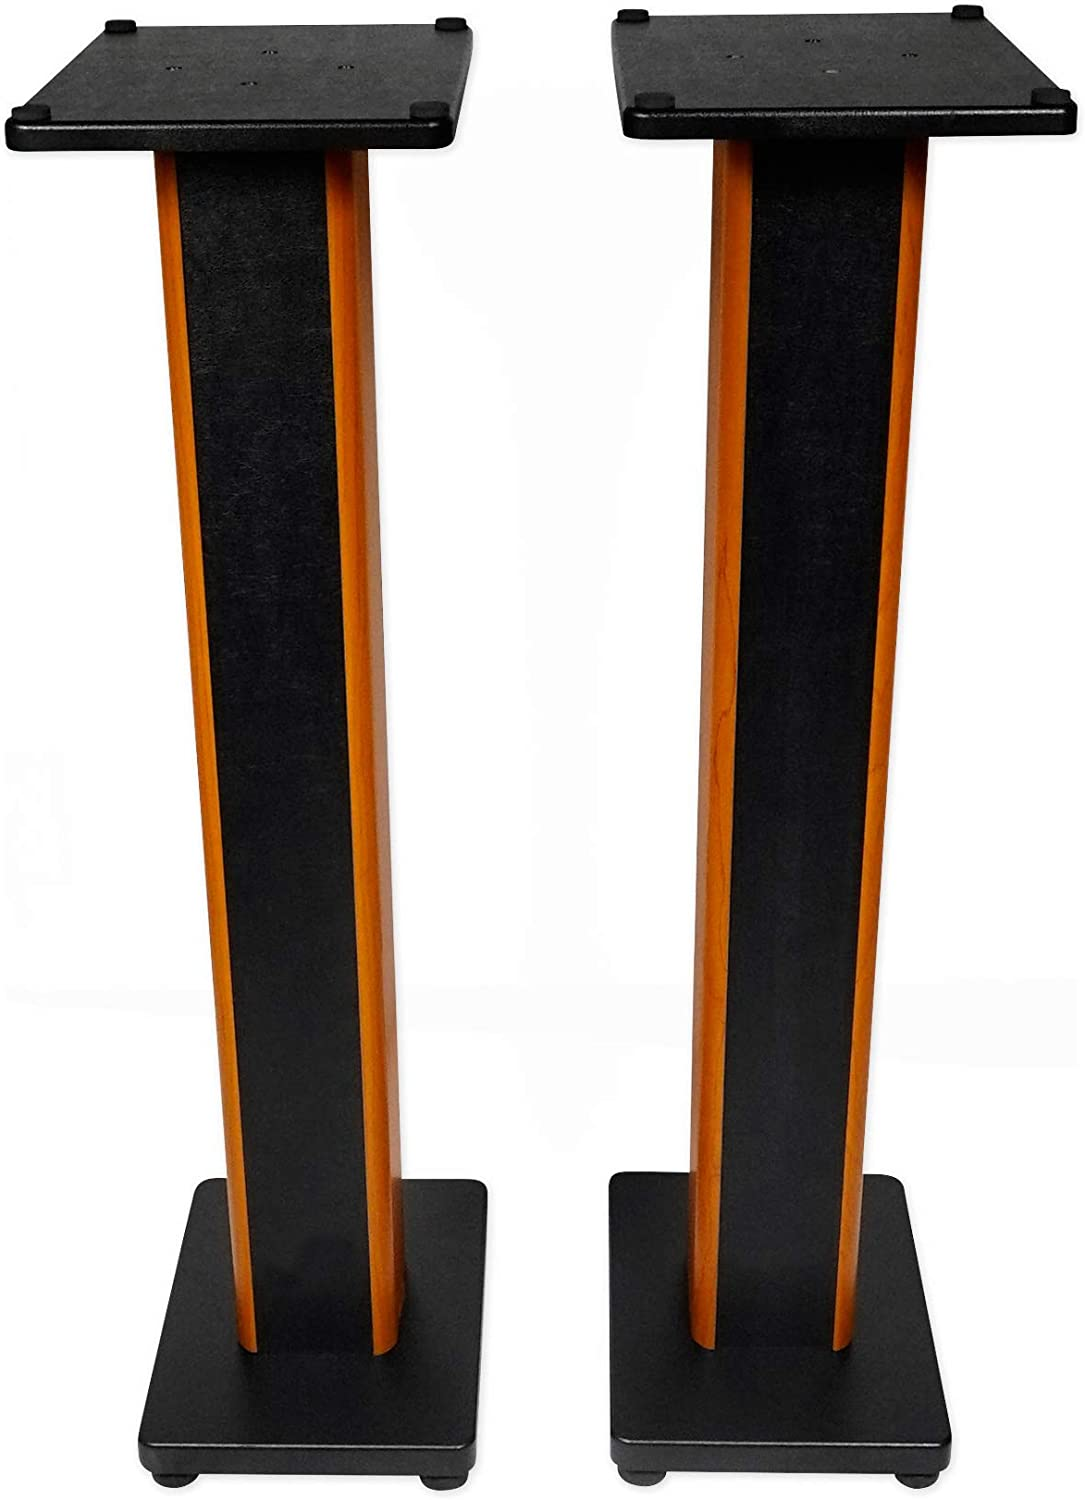 "Rockville 8 RHTSC 8"" Inch Bookshelf Speaker Stands Surround Sound Home  Theater"